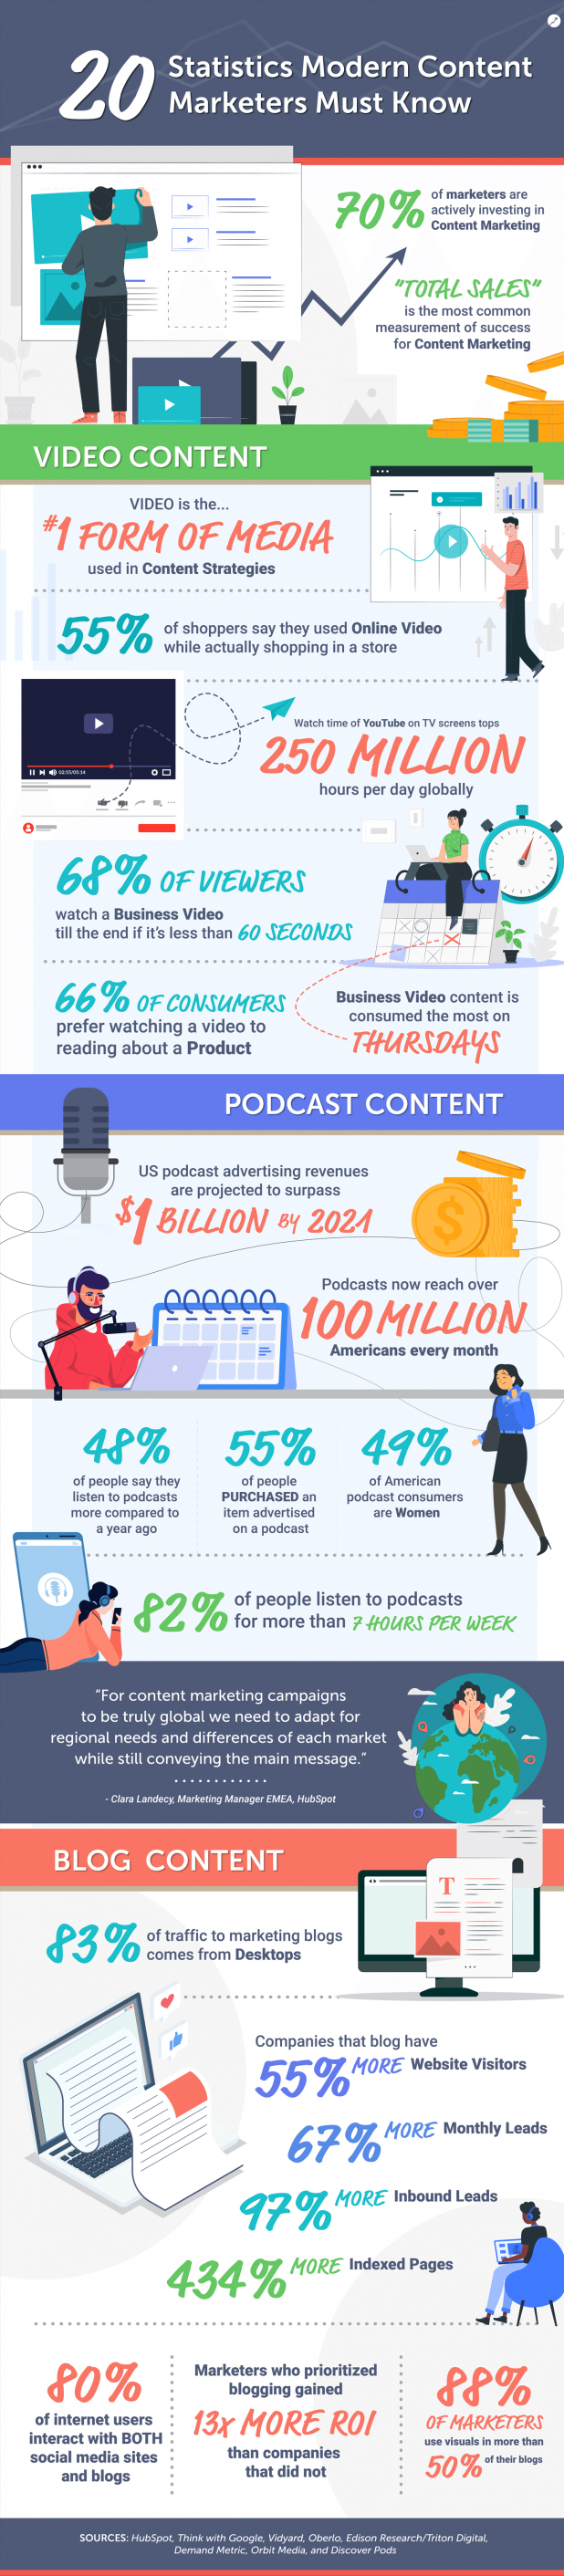 Infographic lists content marketing usage and response rates